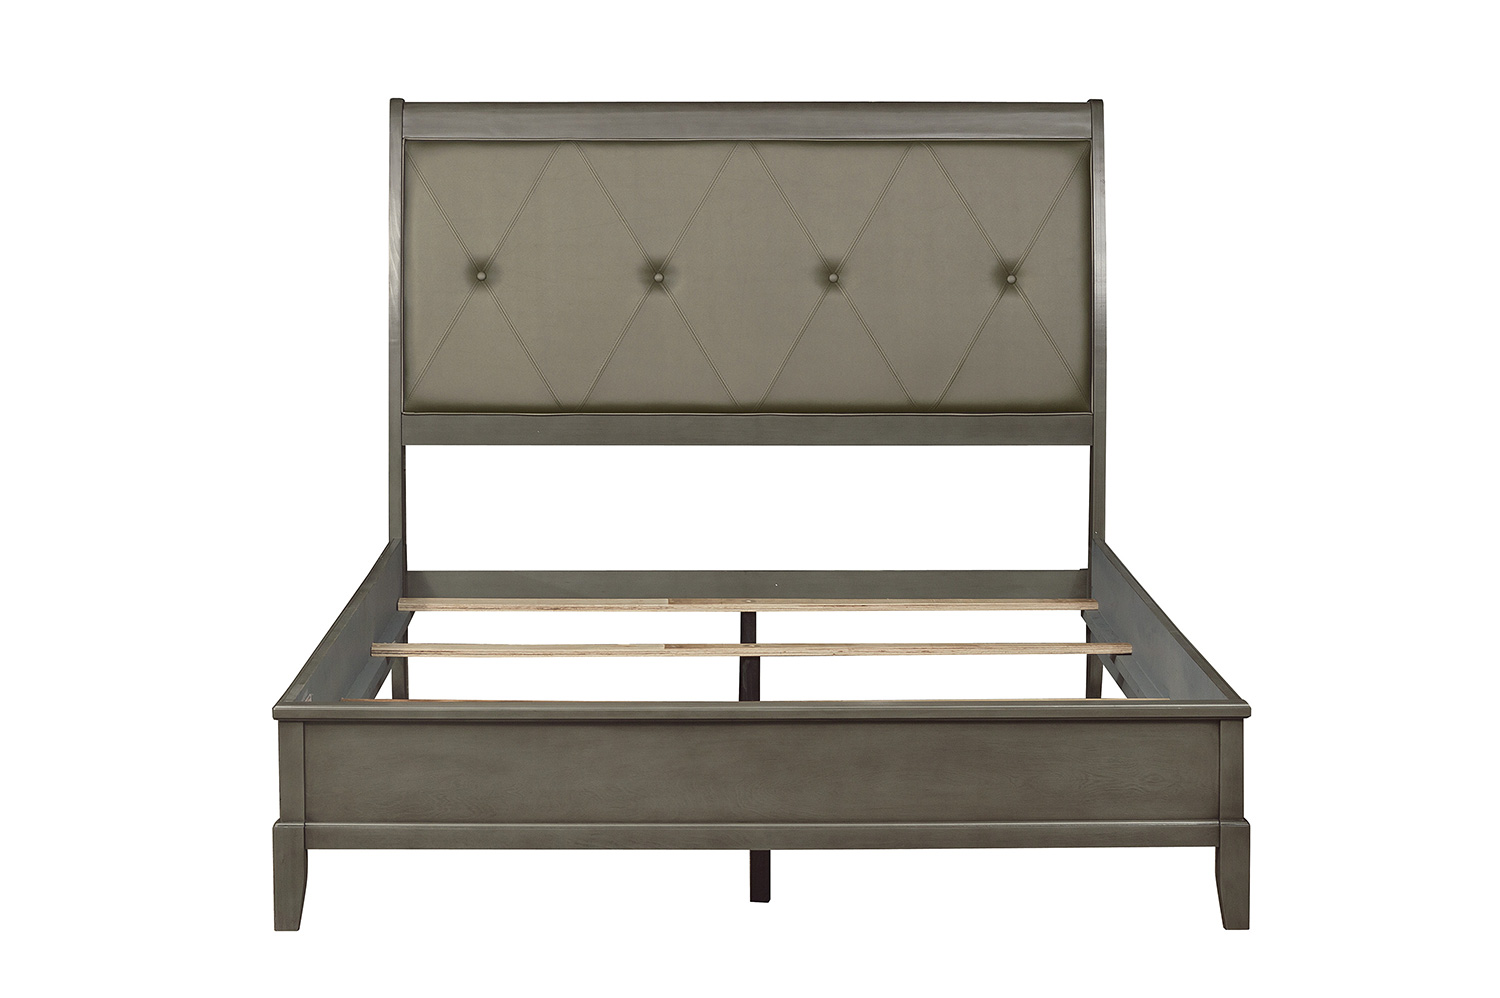 Homelegance Cotterill Bed - Gray Finish over Birch Veneer